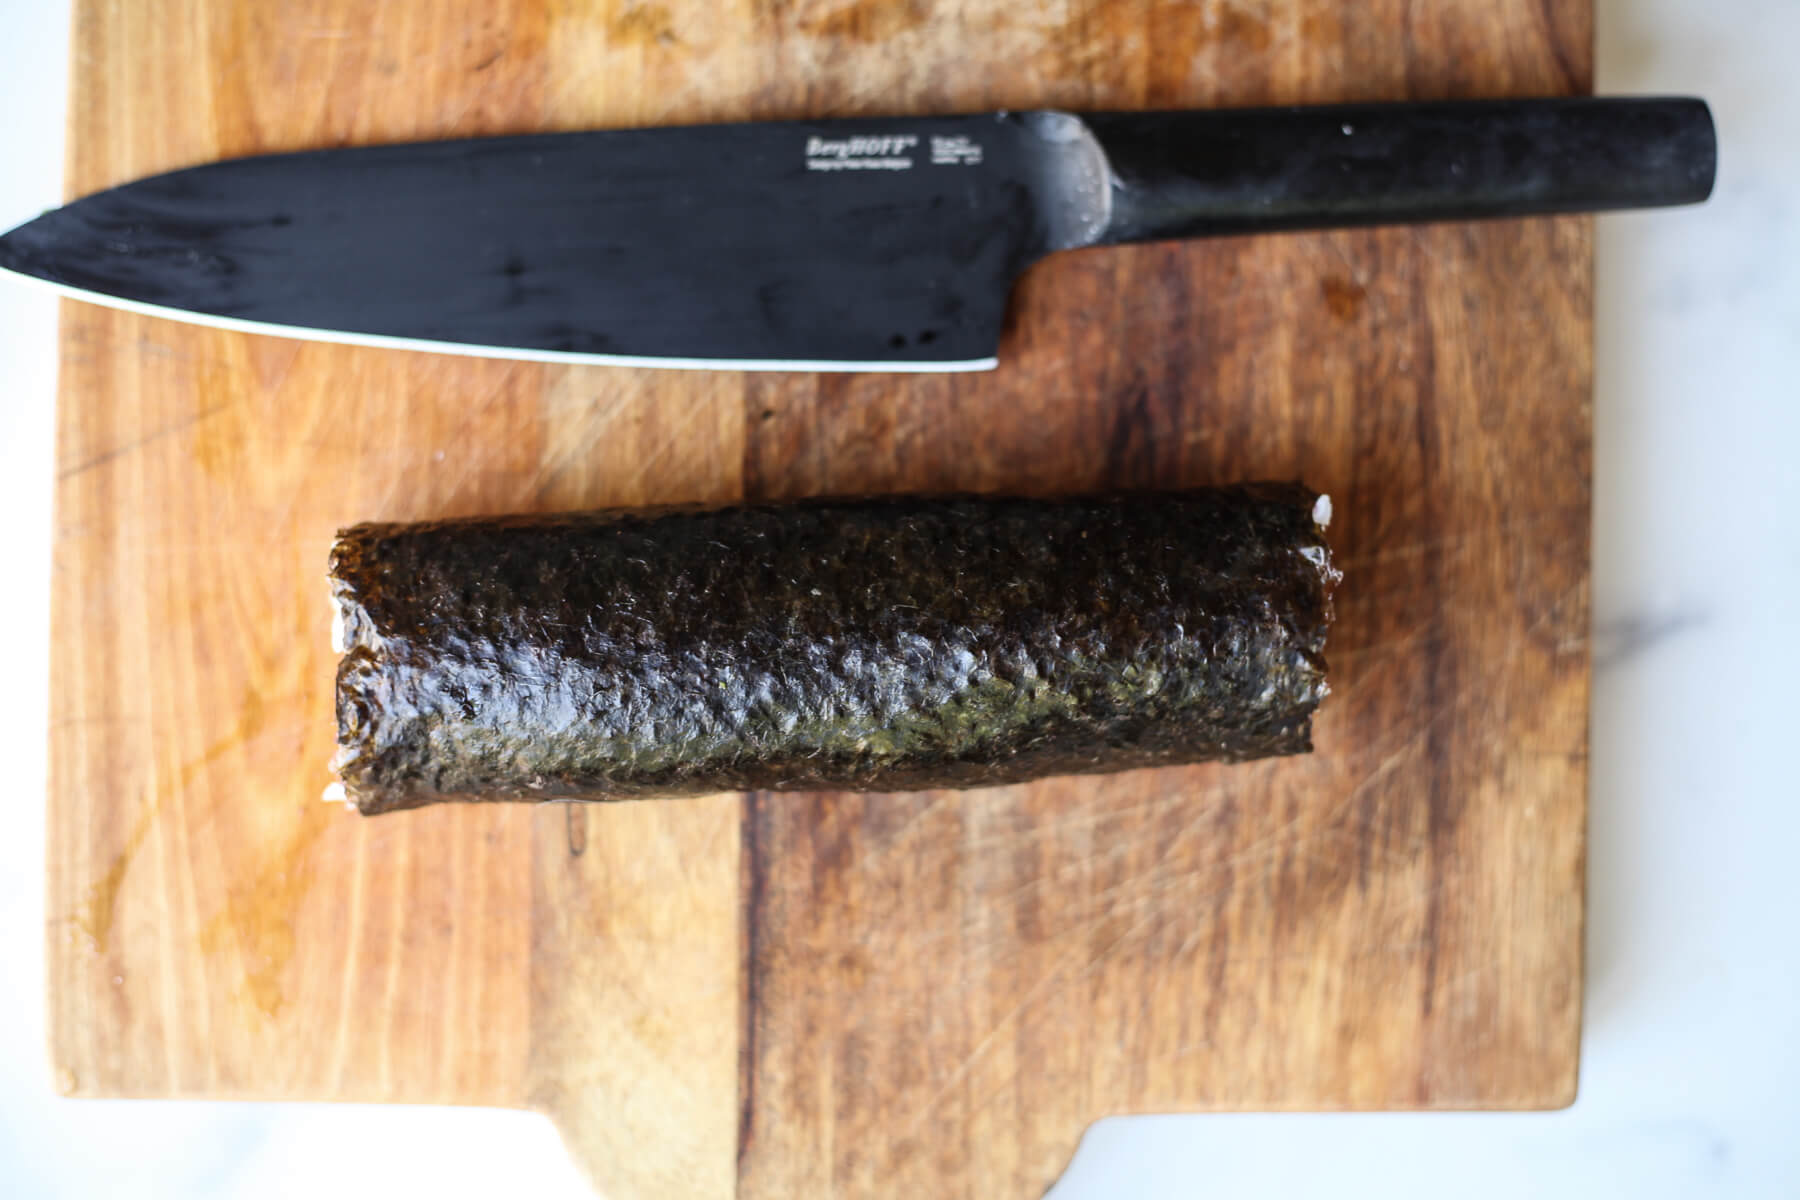 A rolled sushi sits on a cutting board next to a knife before slicing.